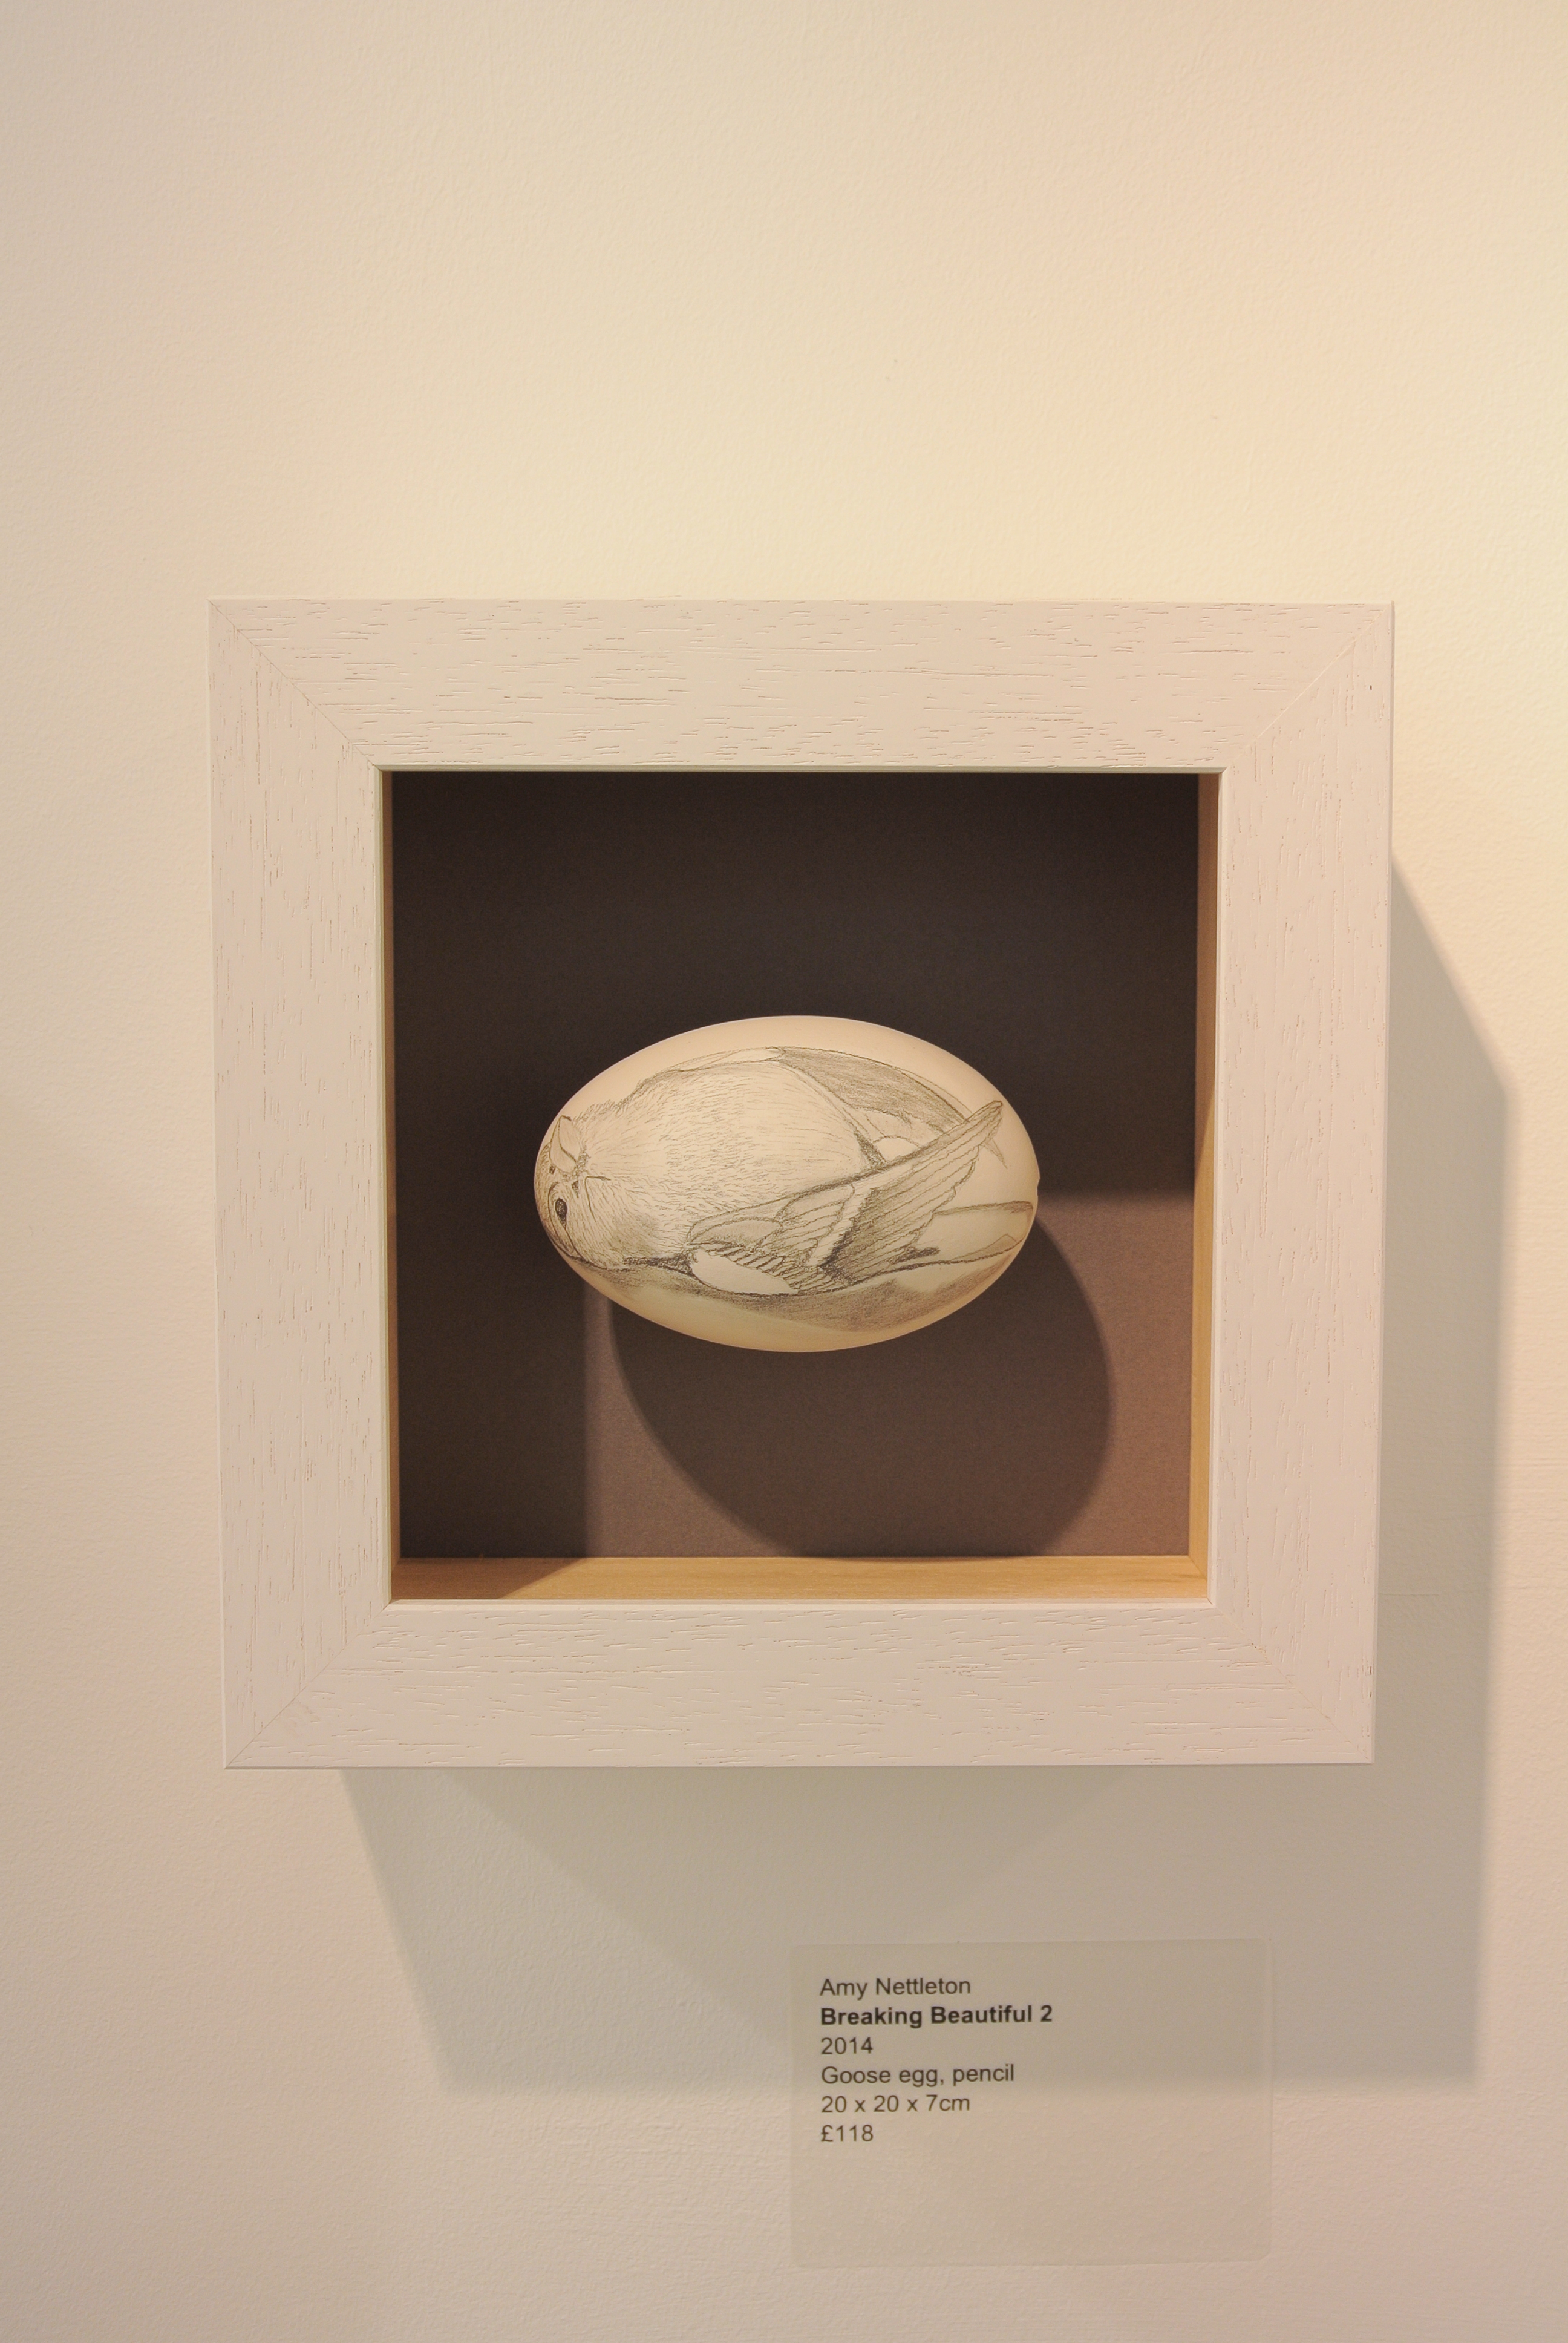 Breaking Beautiful 2, by Amy Nettleton, image of a bird drawn on egg inside a box